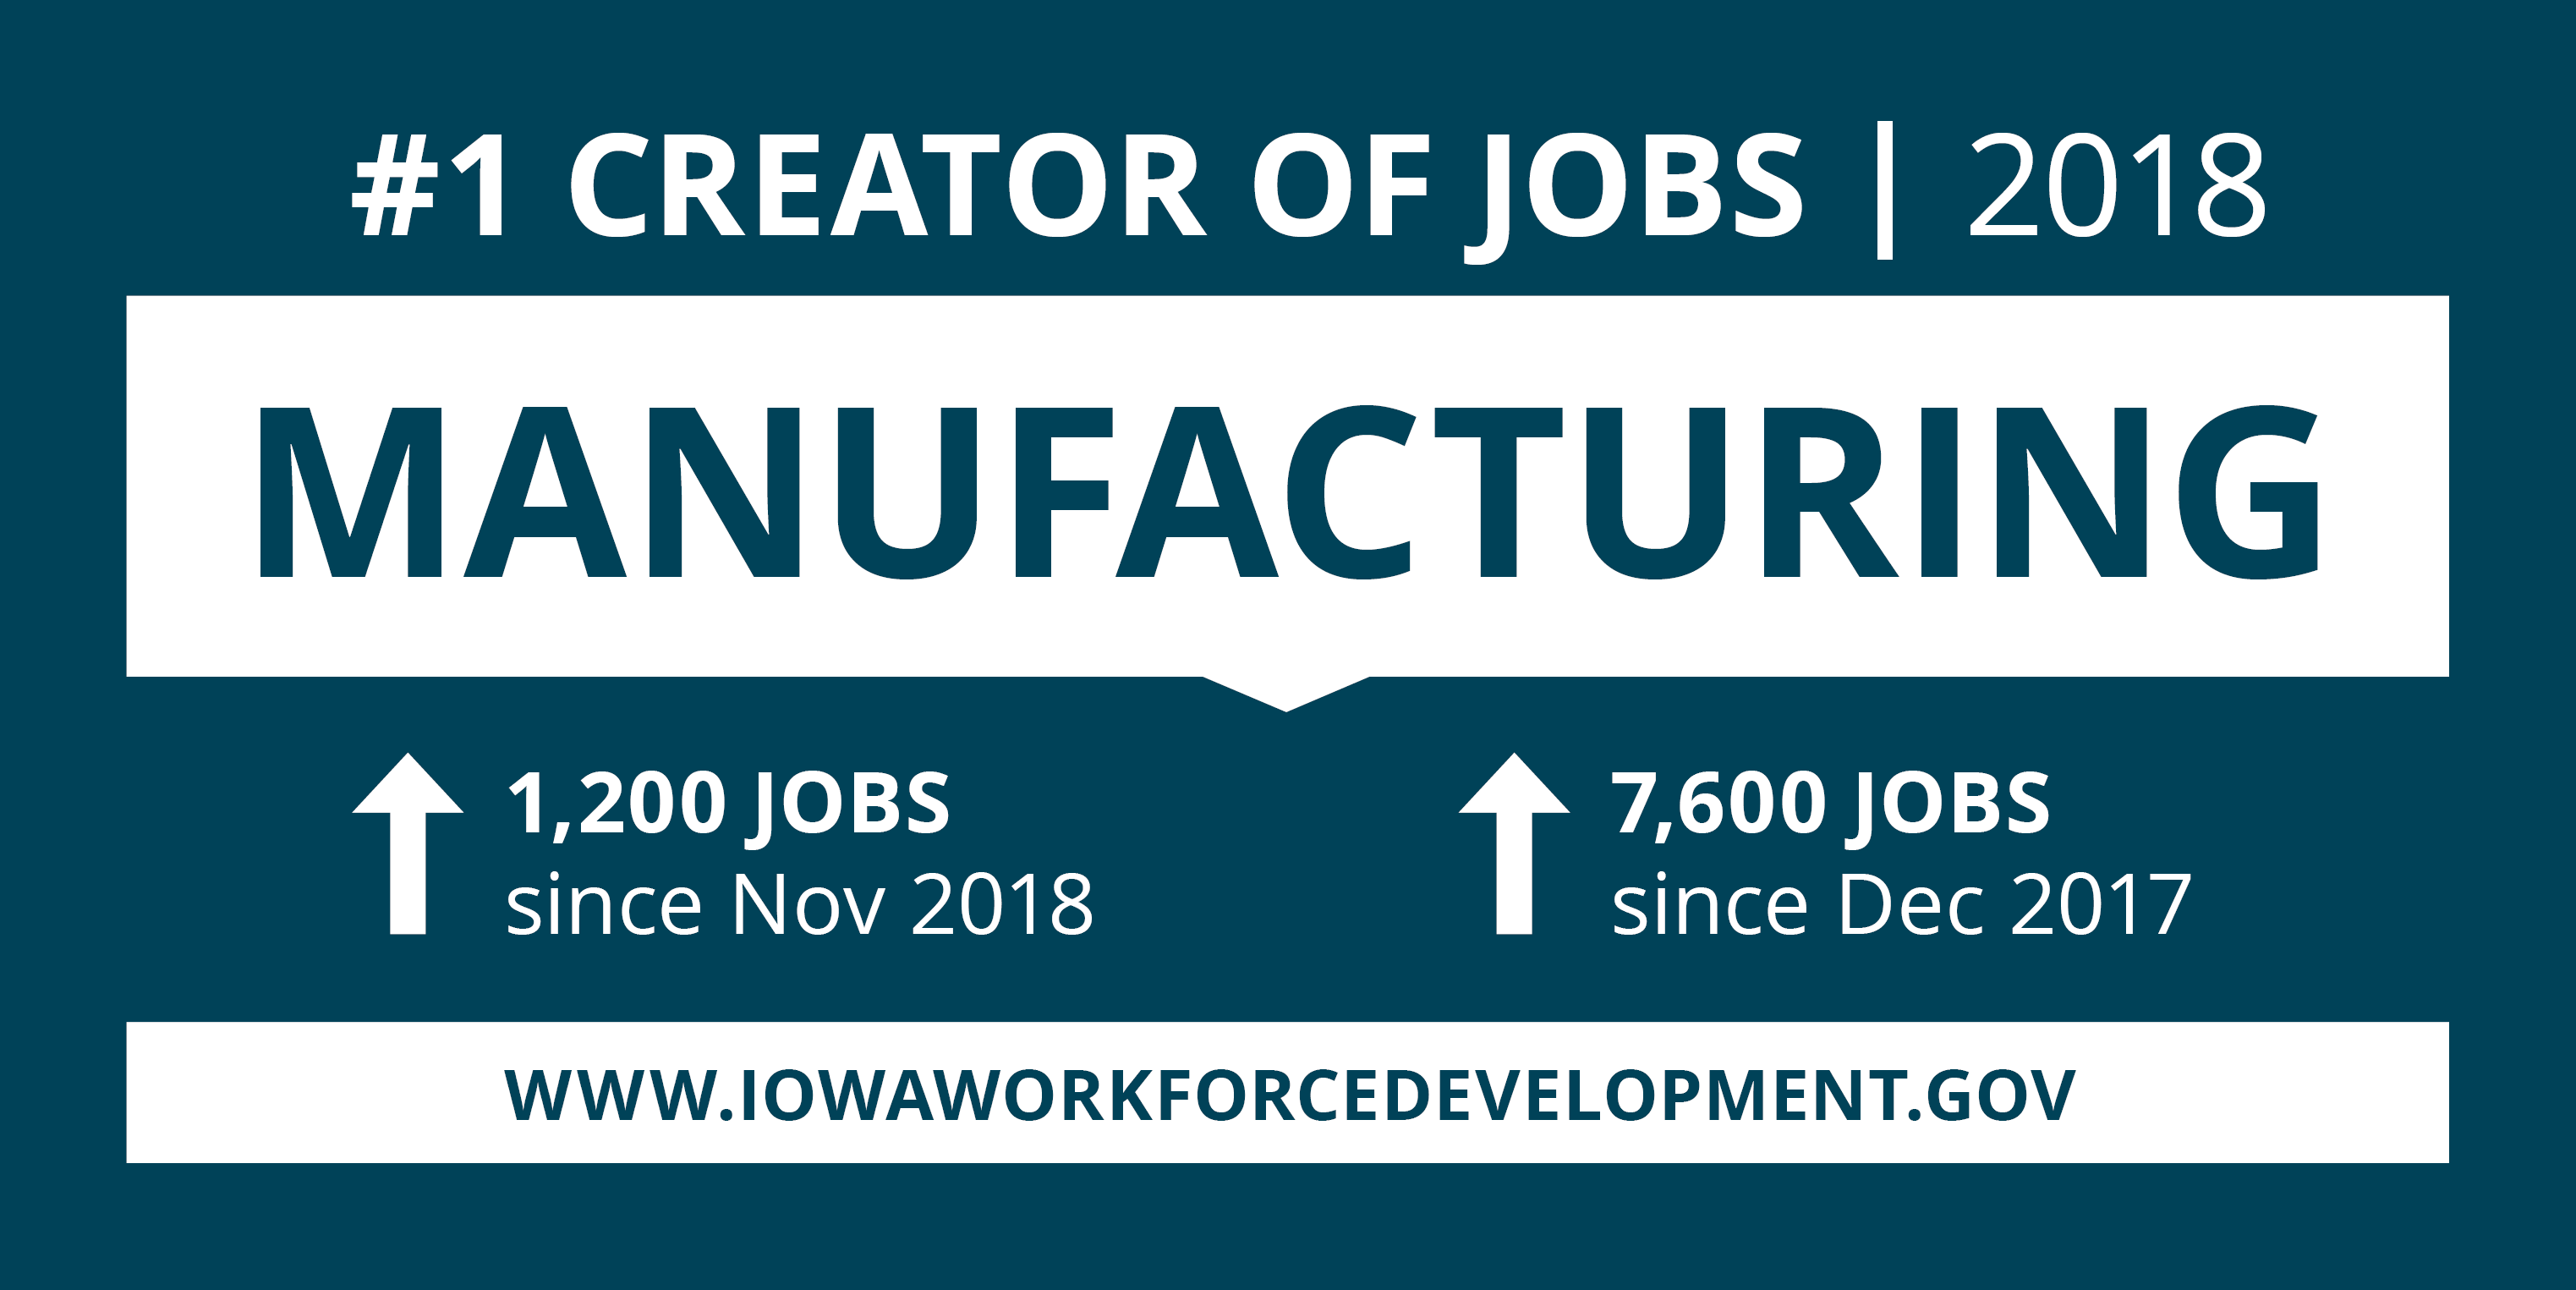 The Manufacturing sector was the state #1 job creator in 2018.